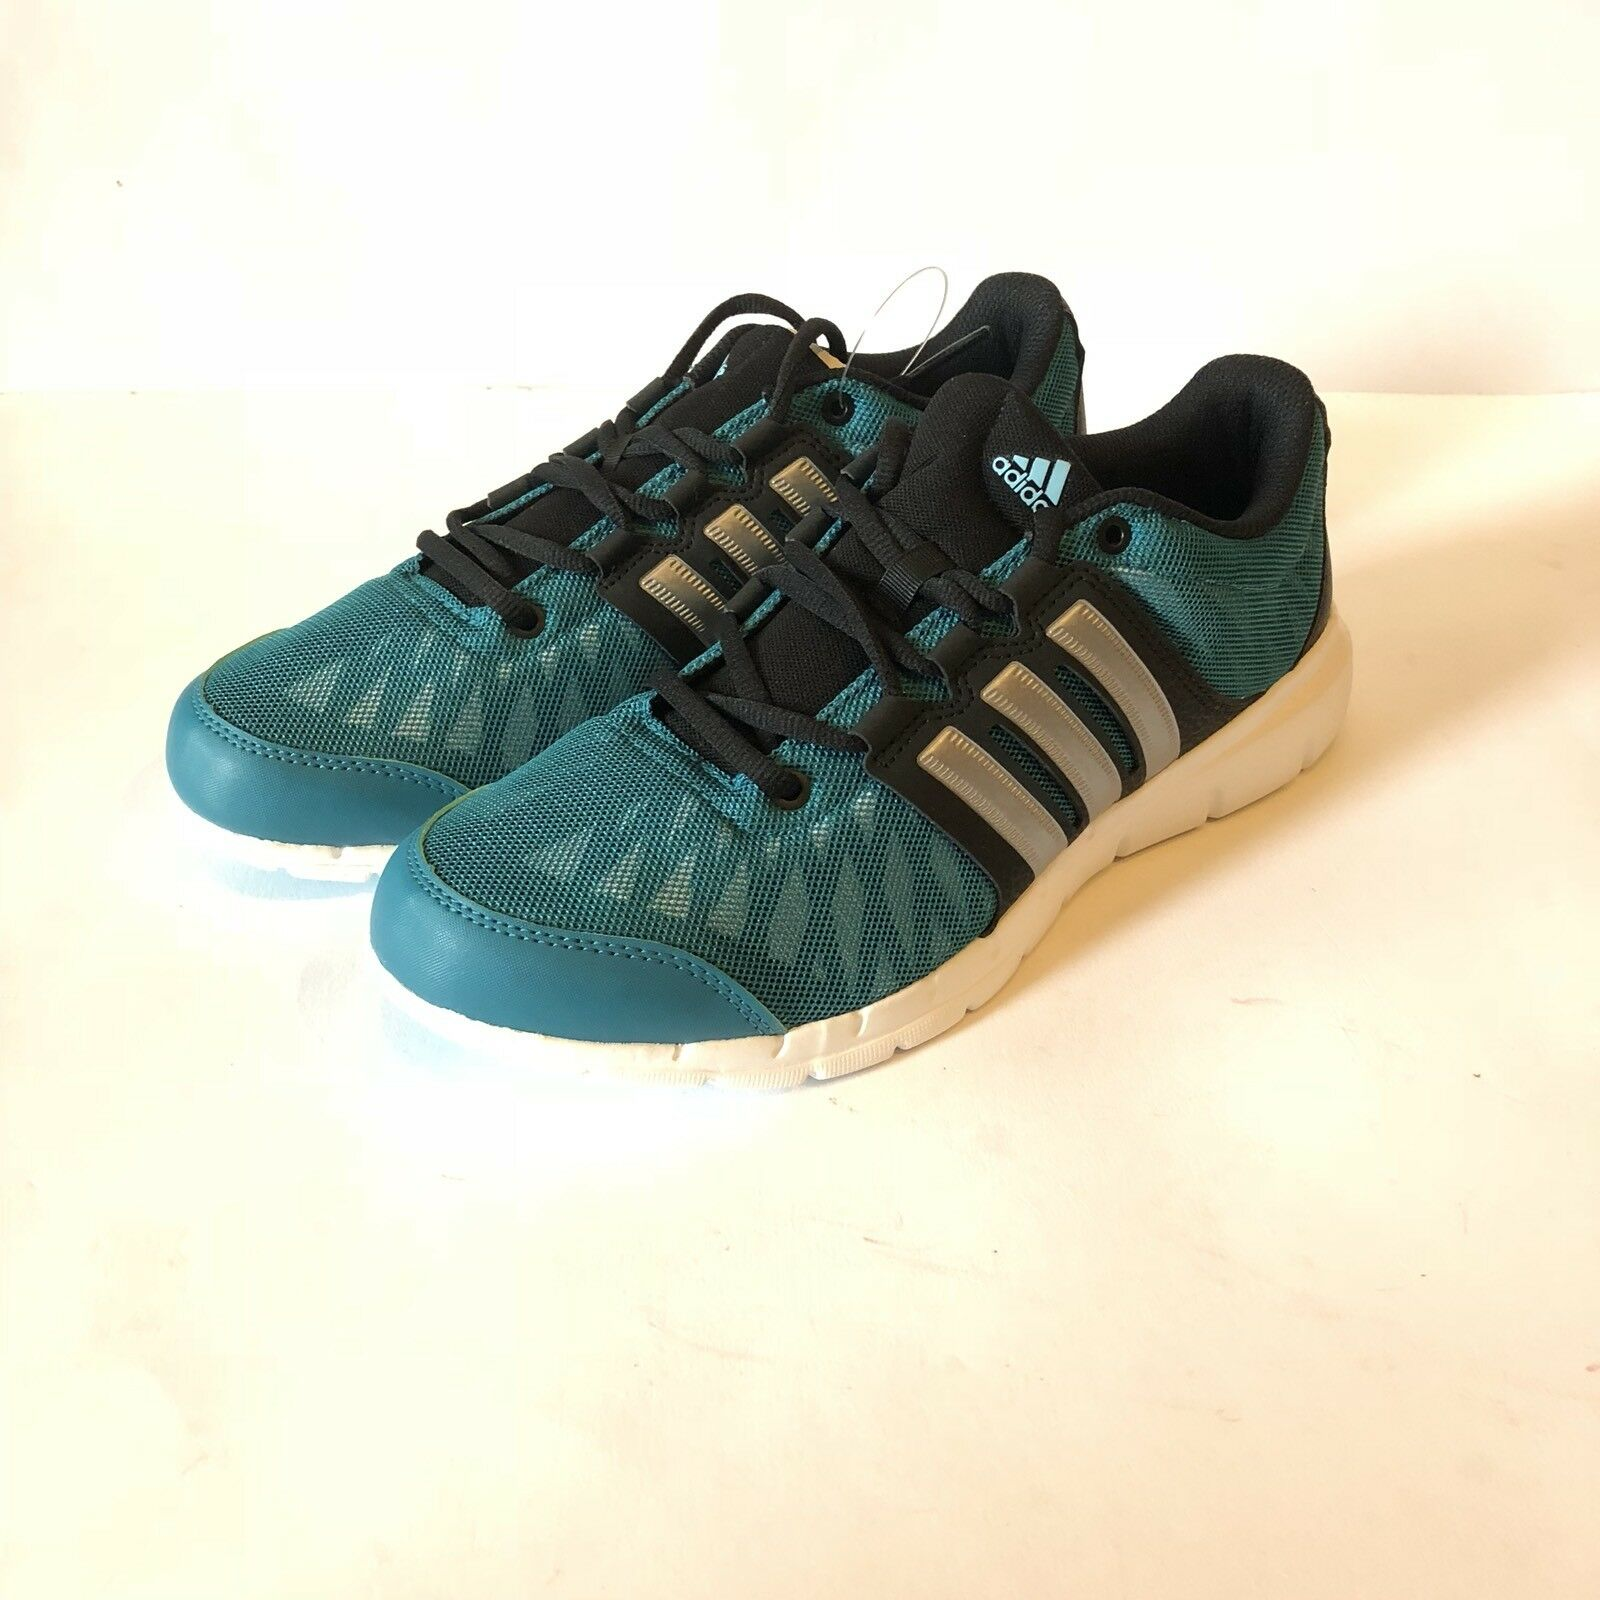 9d1a140b87be1 Adidas Key Flex